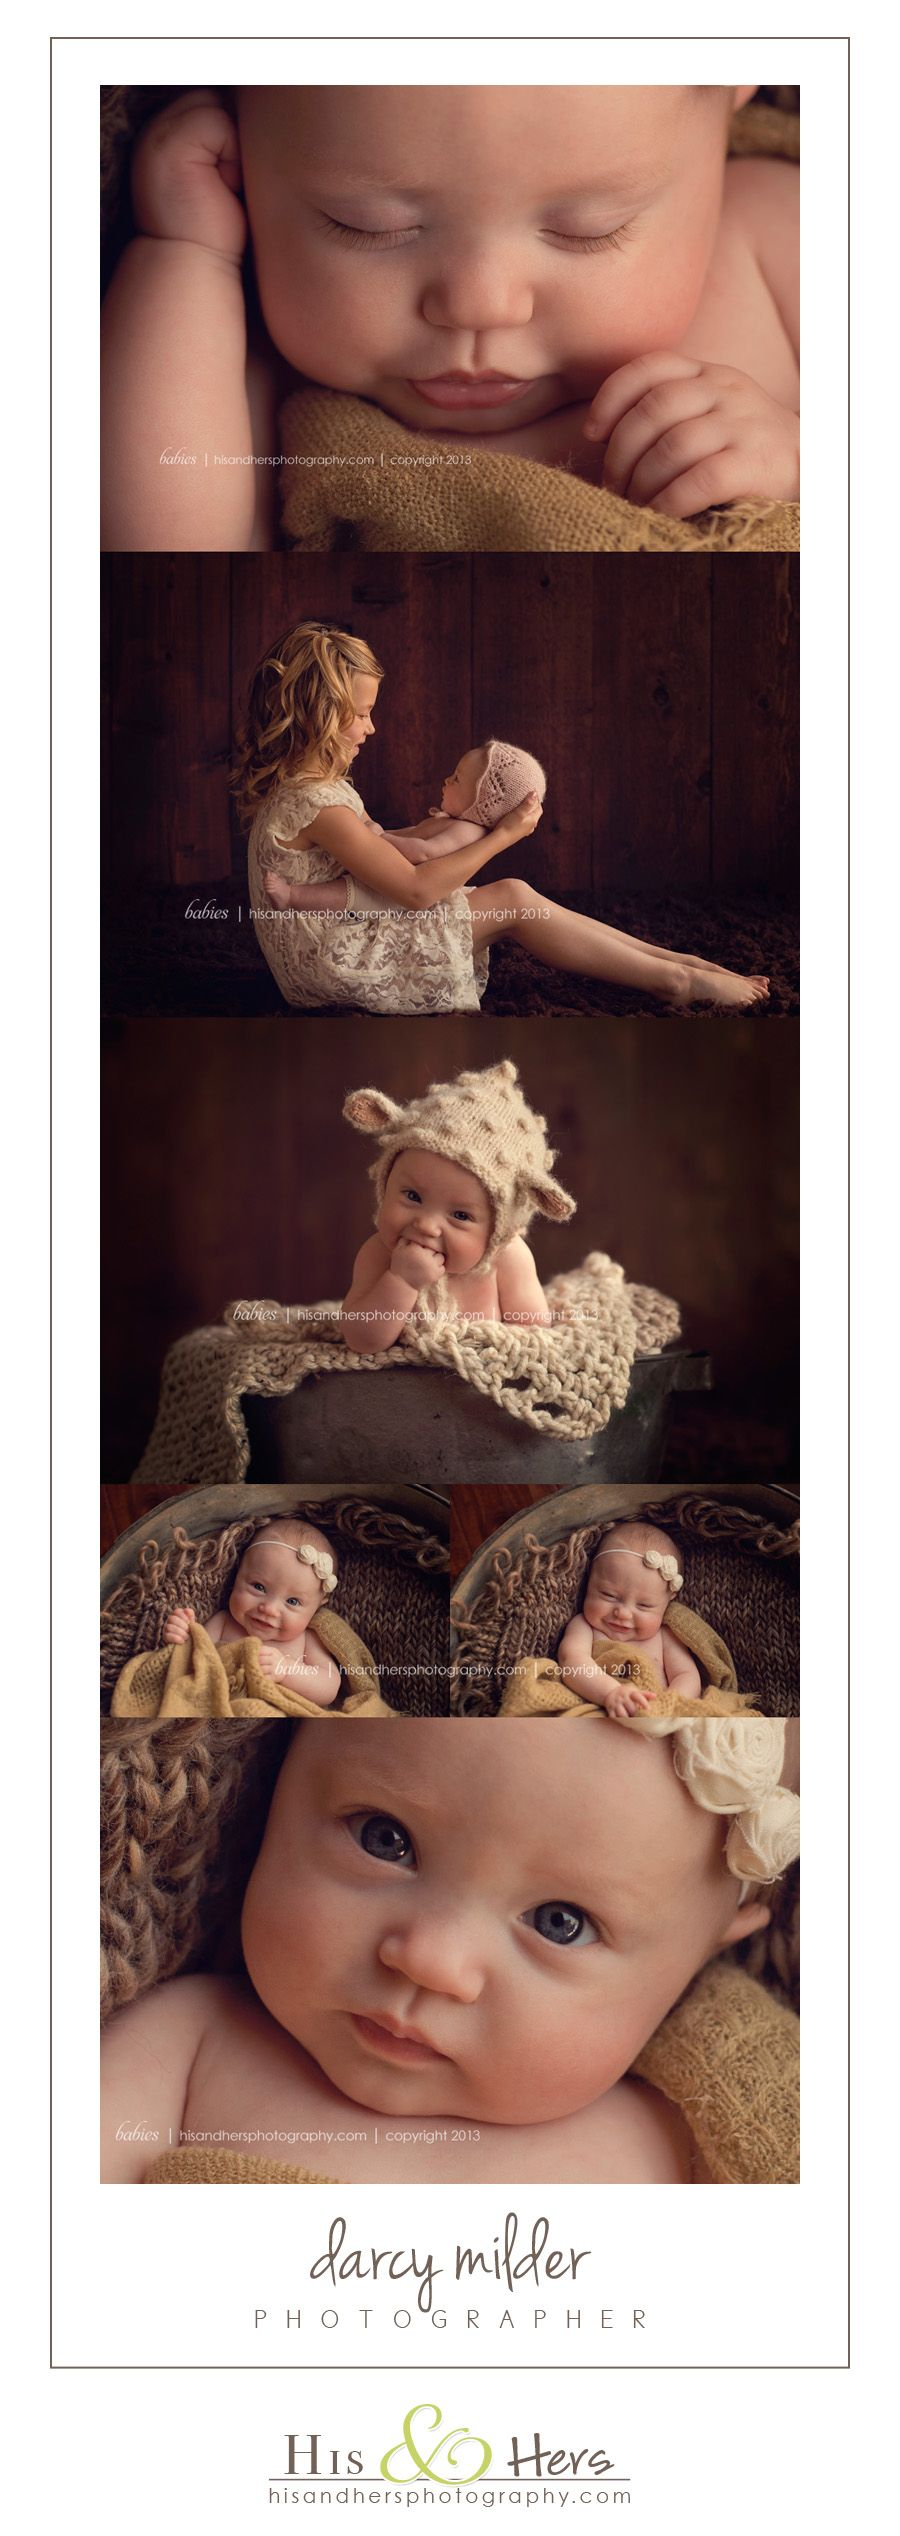 Baby Photographer   Finley, 4 months